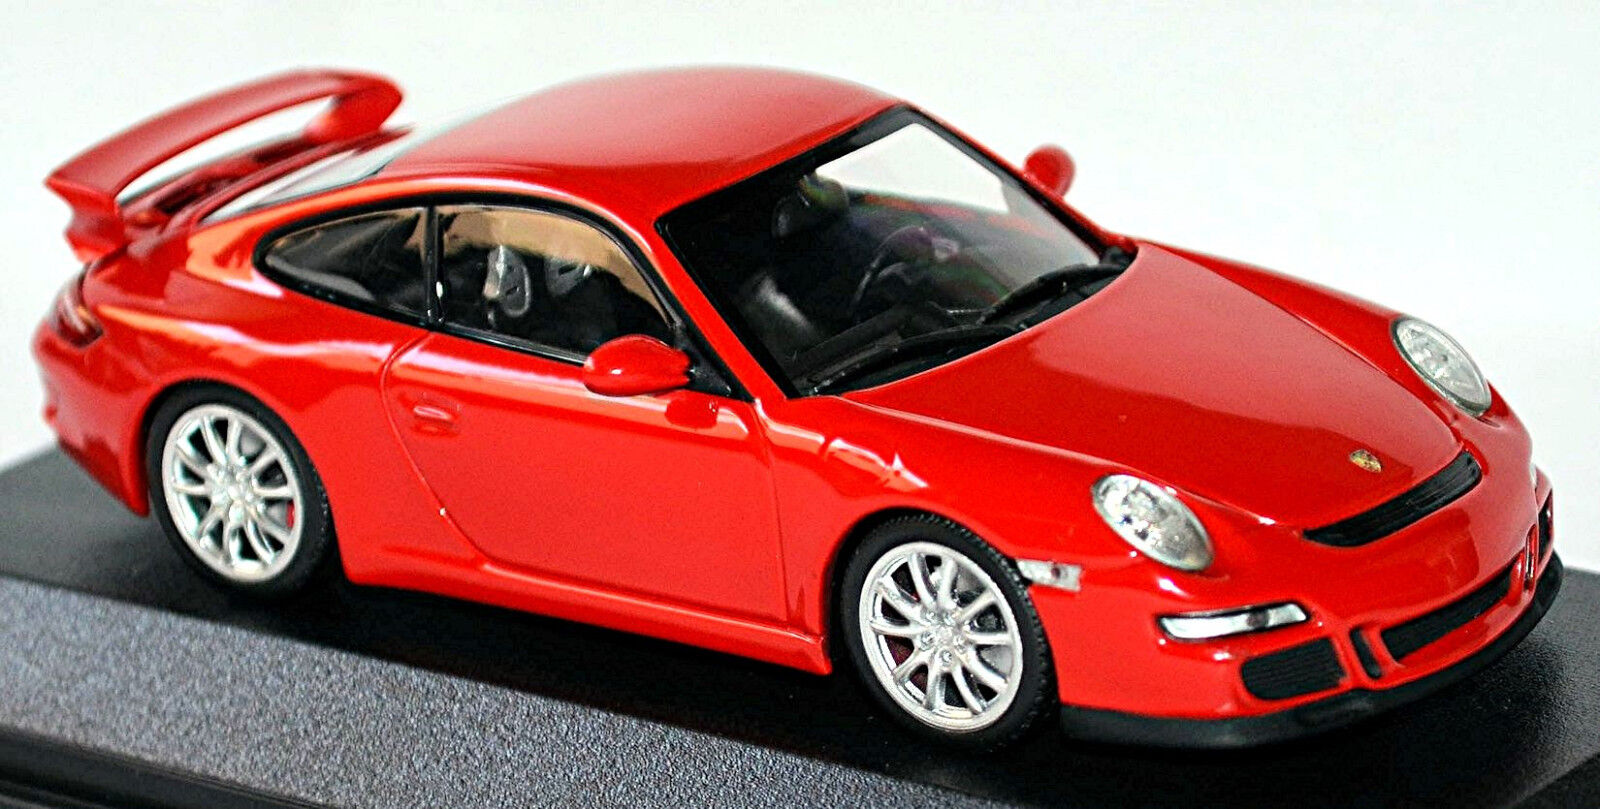 Porsche 911 GT3 Type 997 Coupe 2006-08 Indian Red Red 1 43 Minichamps